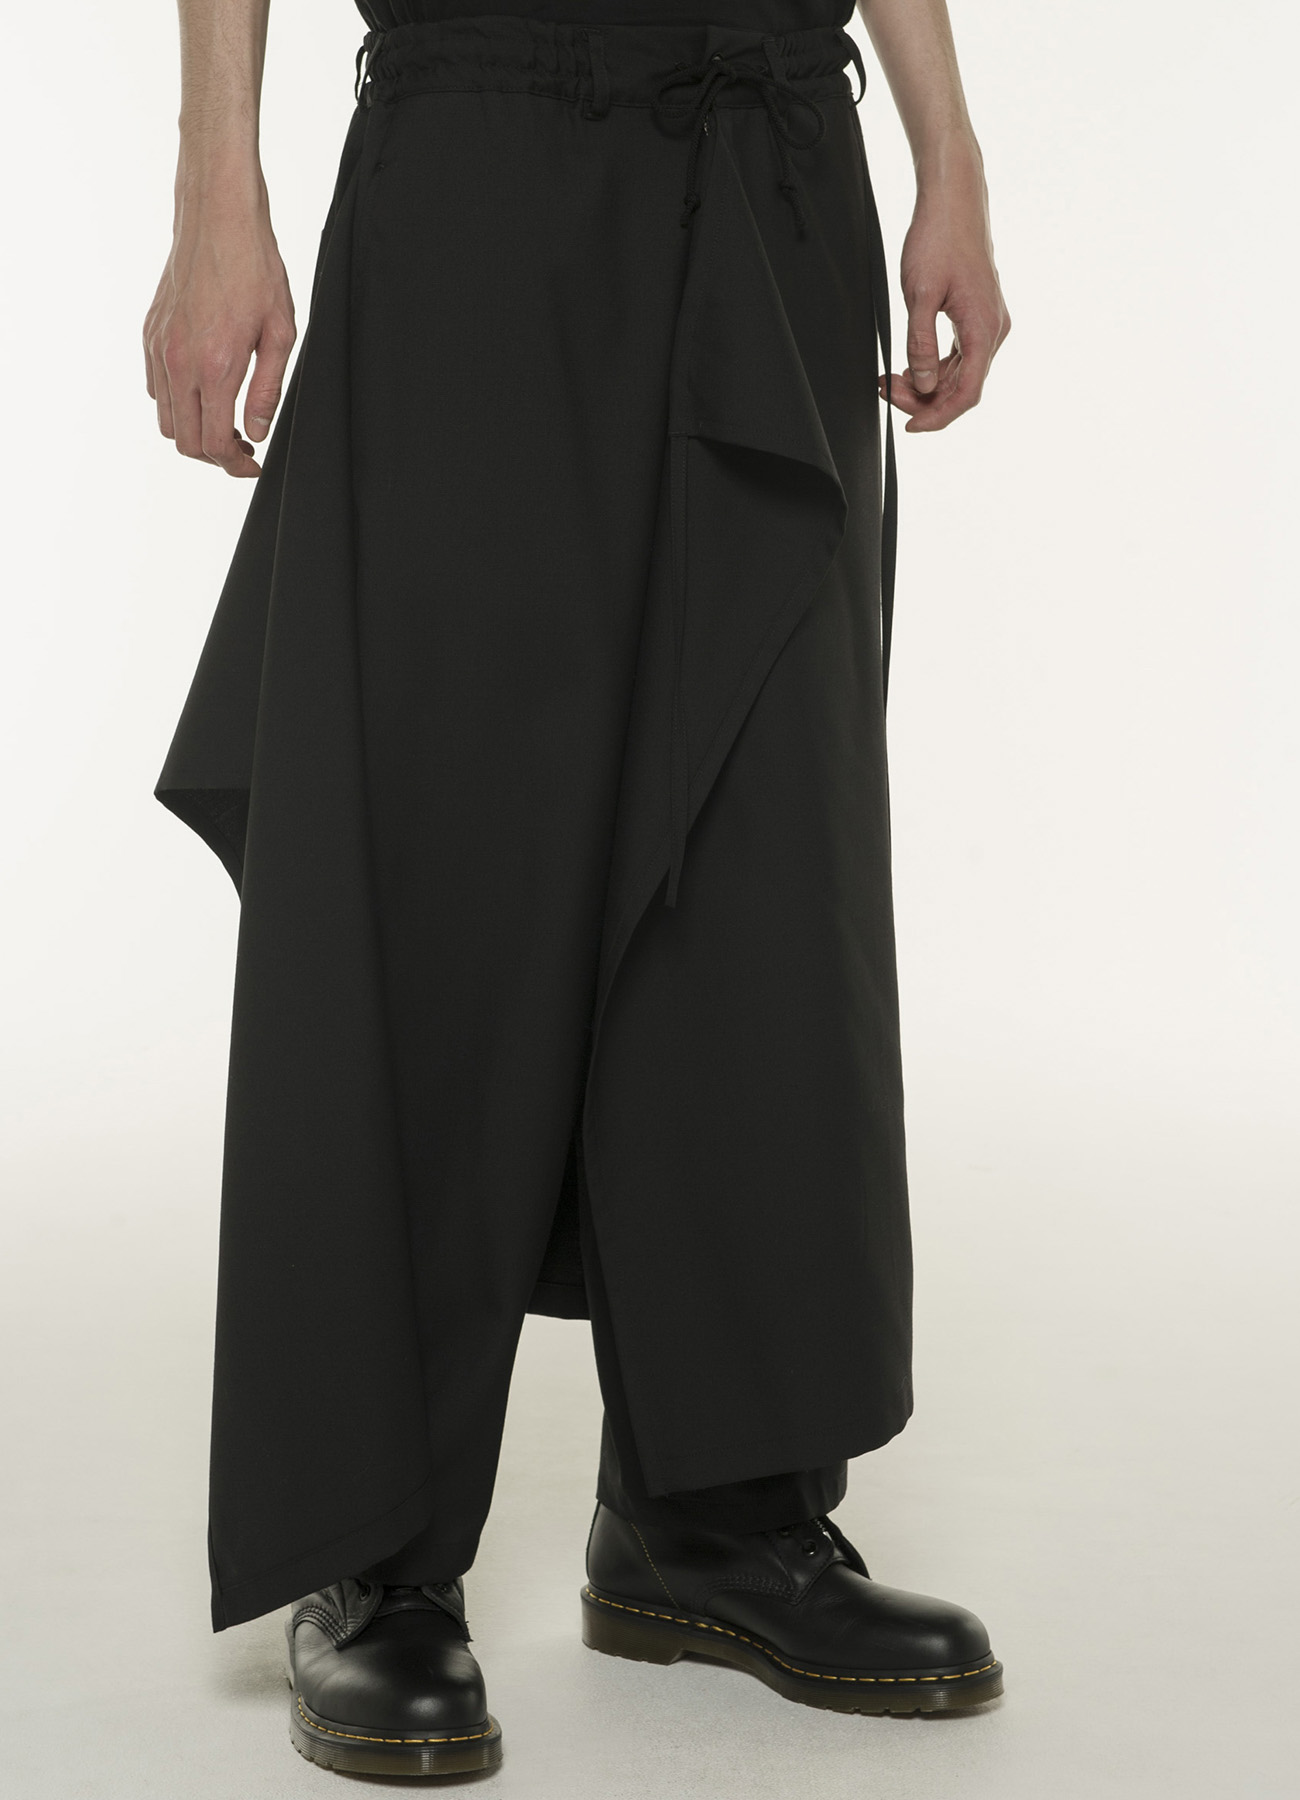 T/W Gabardine Three Way Skirt Pants